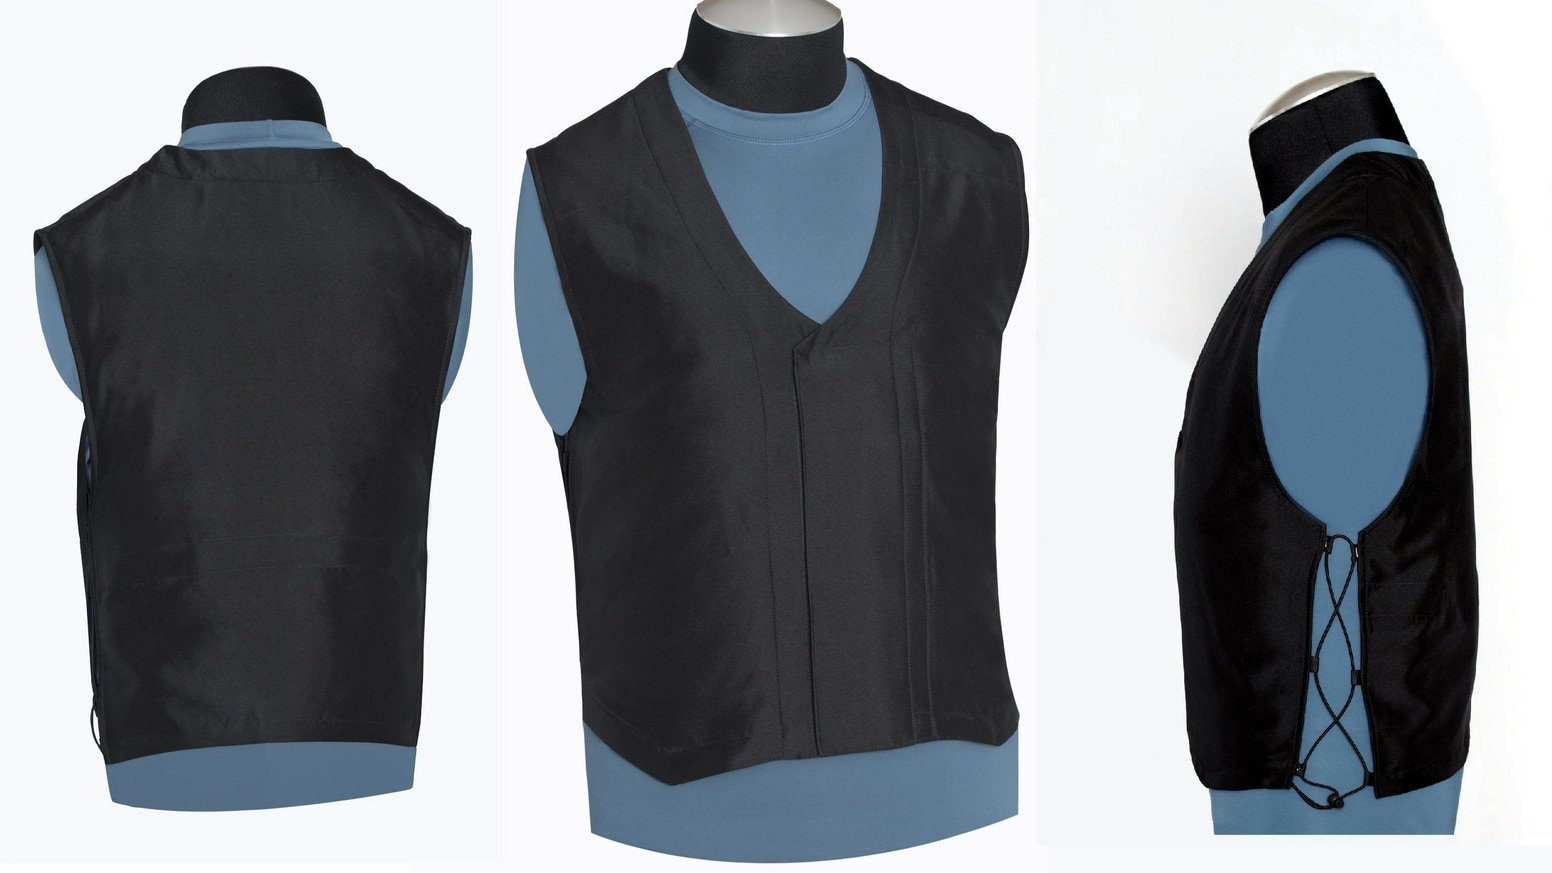 This will be our third KickStarter-funded vest, combining the casual style of the Classic with the long-lasting CryoMAX ice of the PRO!